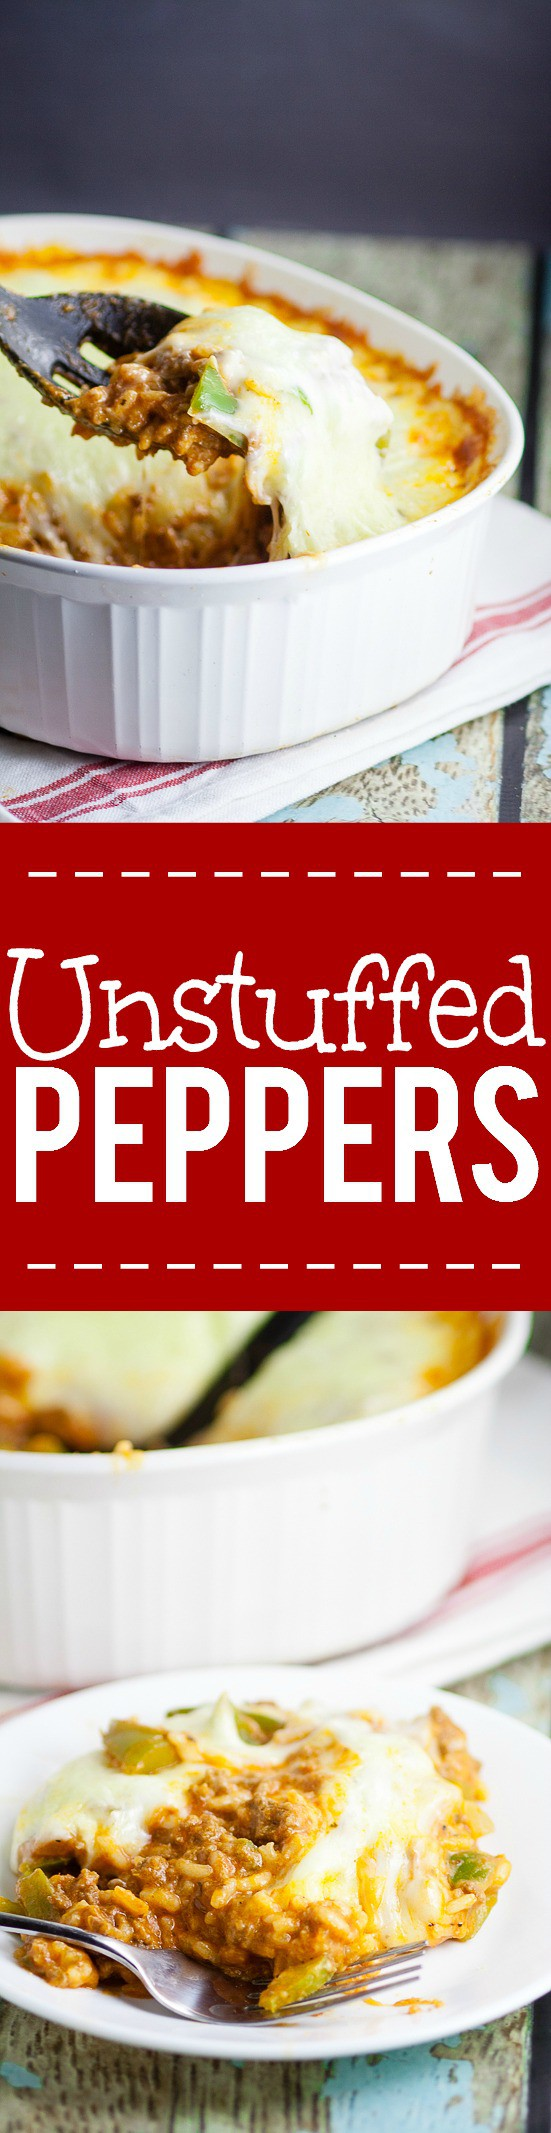 Unstuffed peppers recipe - Quick and easy, 30 minute, one pot dinner recipe. That's right.  This simple family dinner recipe has it all! Get all the delicious comforting flavor you love in classic stuffed peppers in just 30 minutes with this equally yummy but twice as easy Unstuffed Peppers recipe.